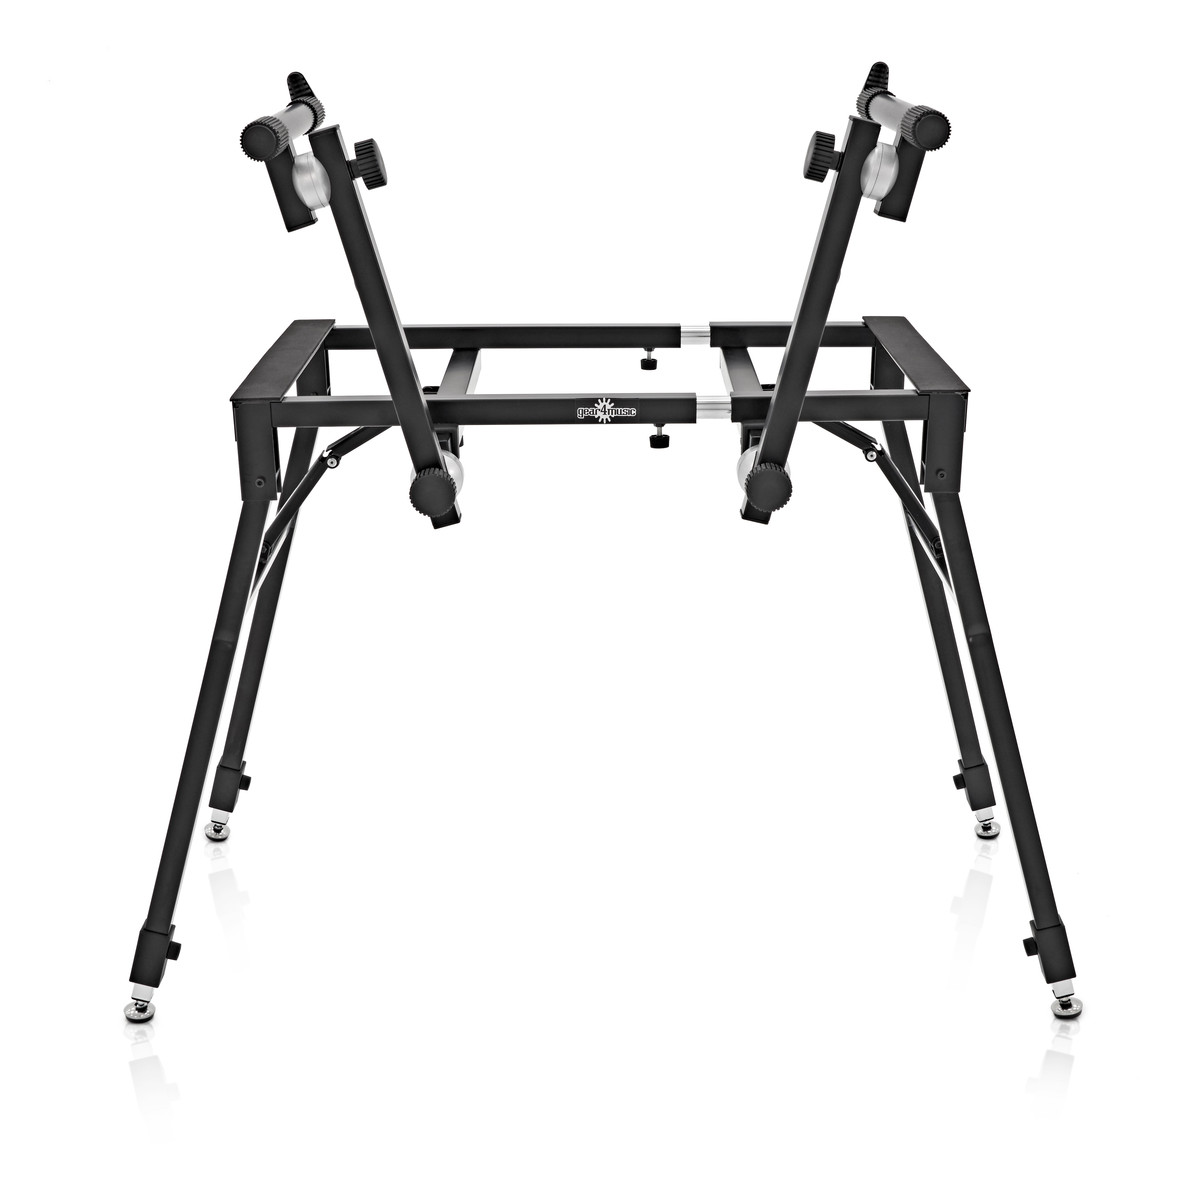 Keyboard Stand Designs : Deluxe tier keyboard stand by gear music b stock at